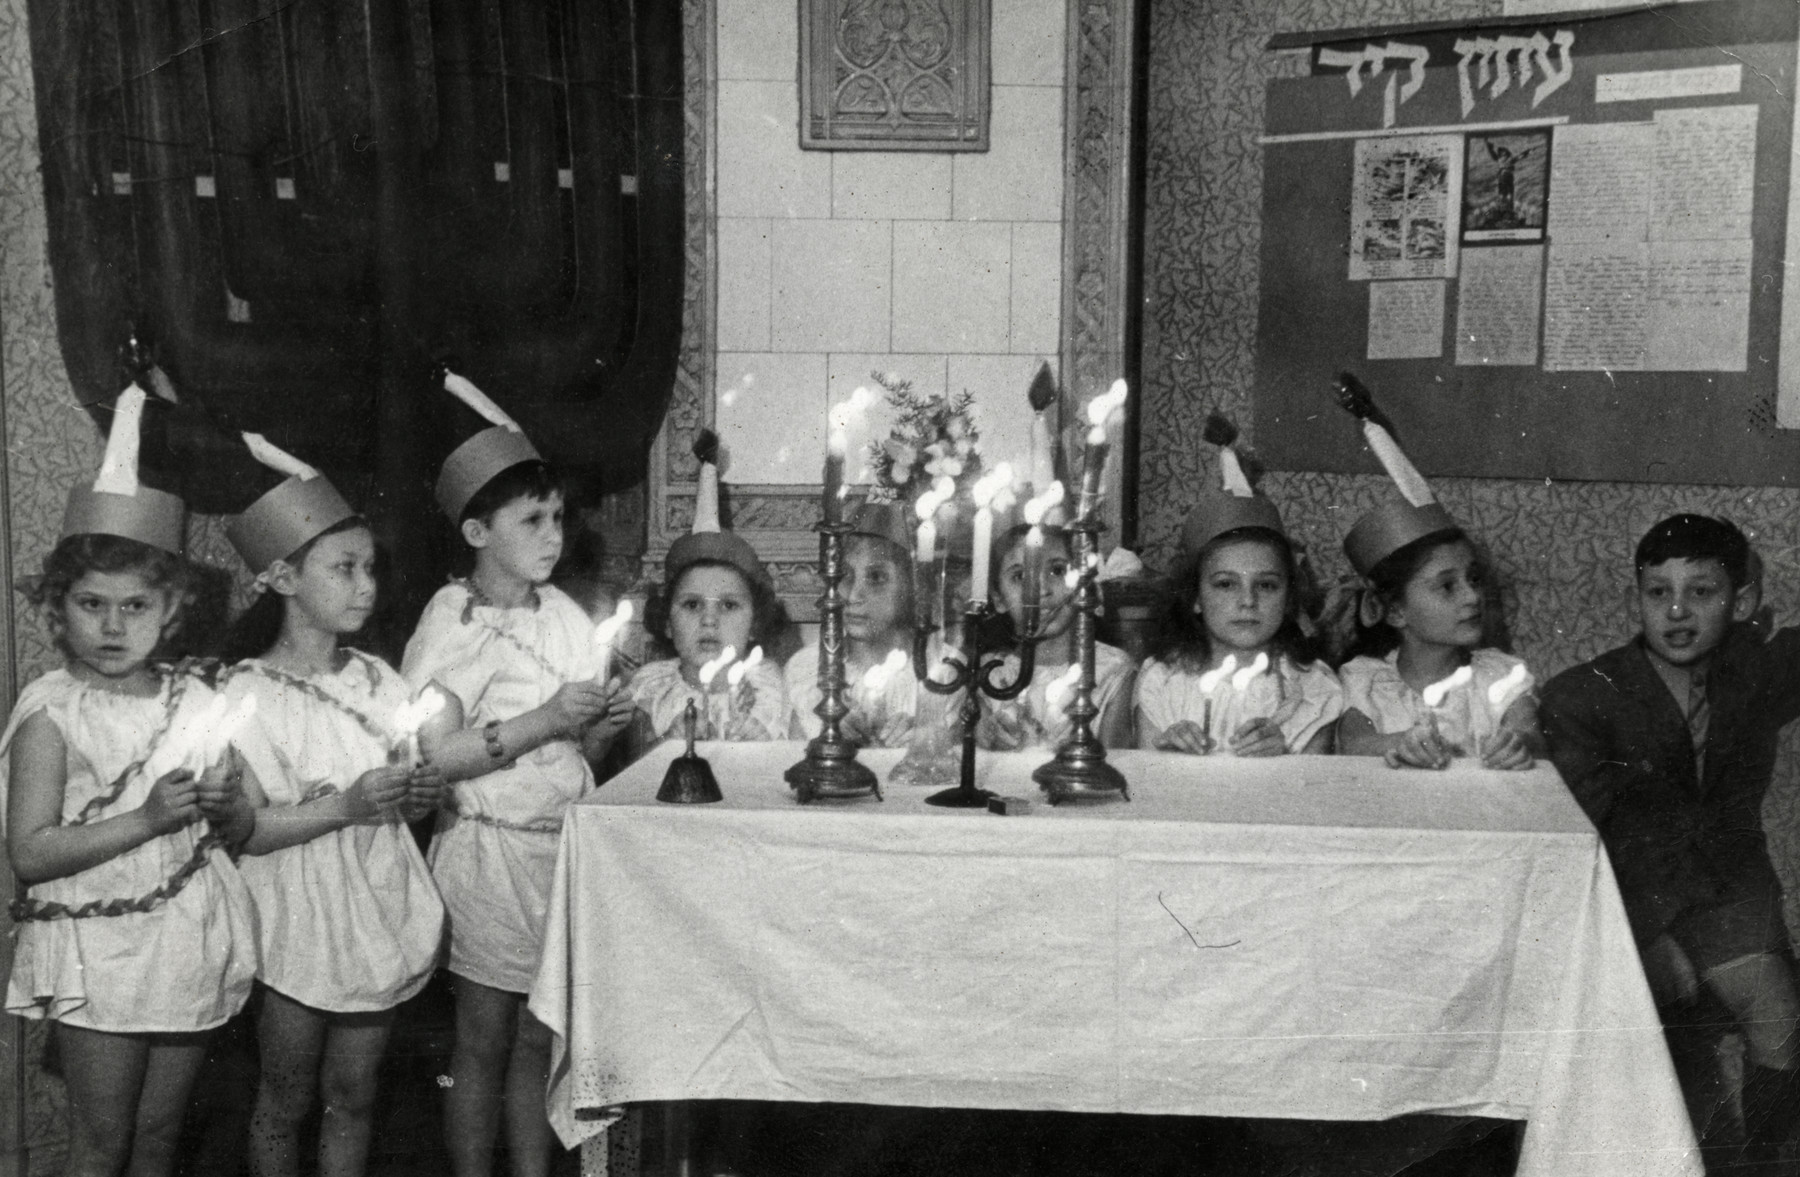 Children in the Jewish orphanage in Lodz celebrate Hannukah in costume.  Pictured left to right are Sabina, Tammy and Tamar.